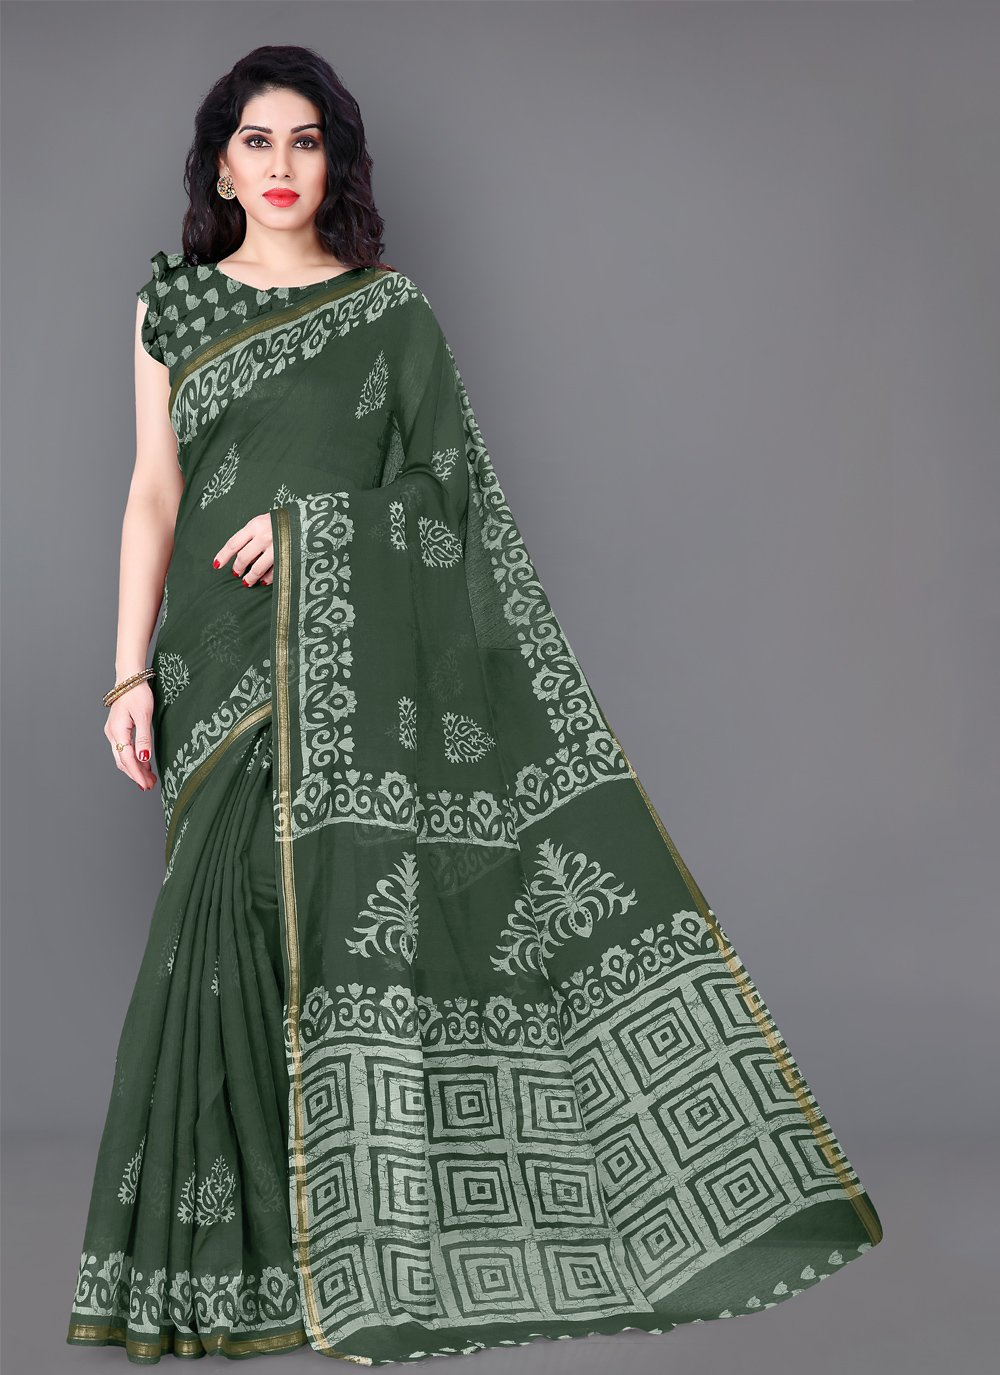 Printed Cotton Classic Saree in Green